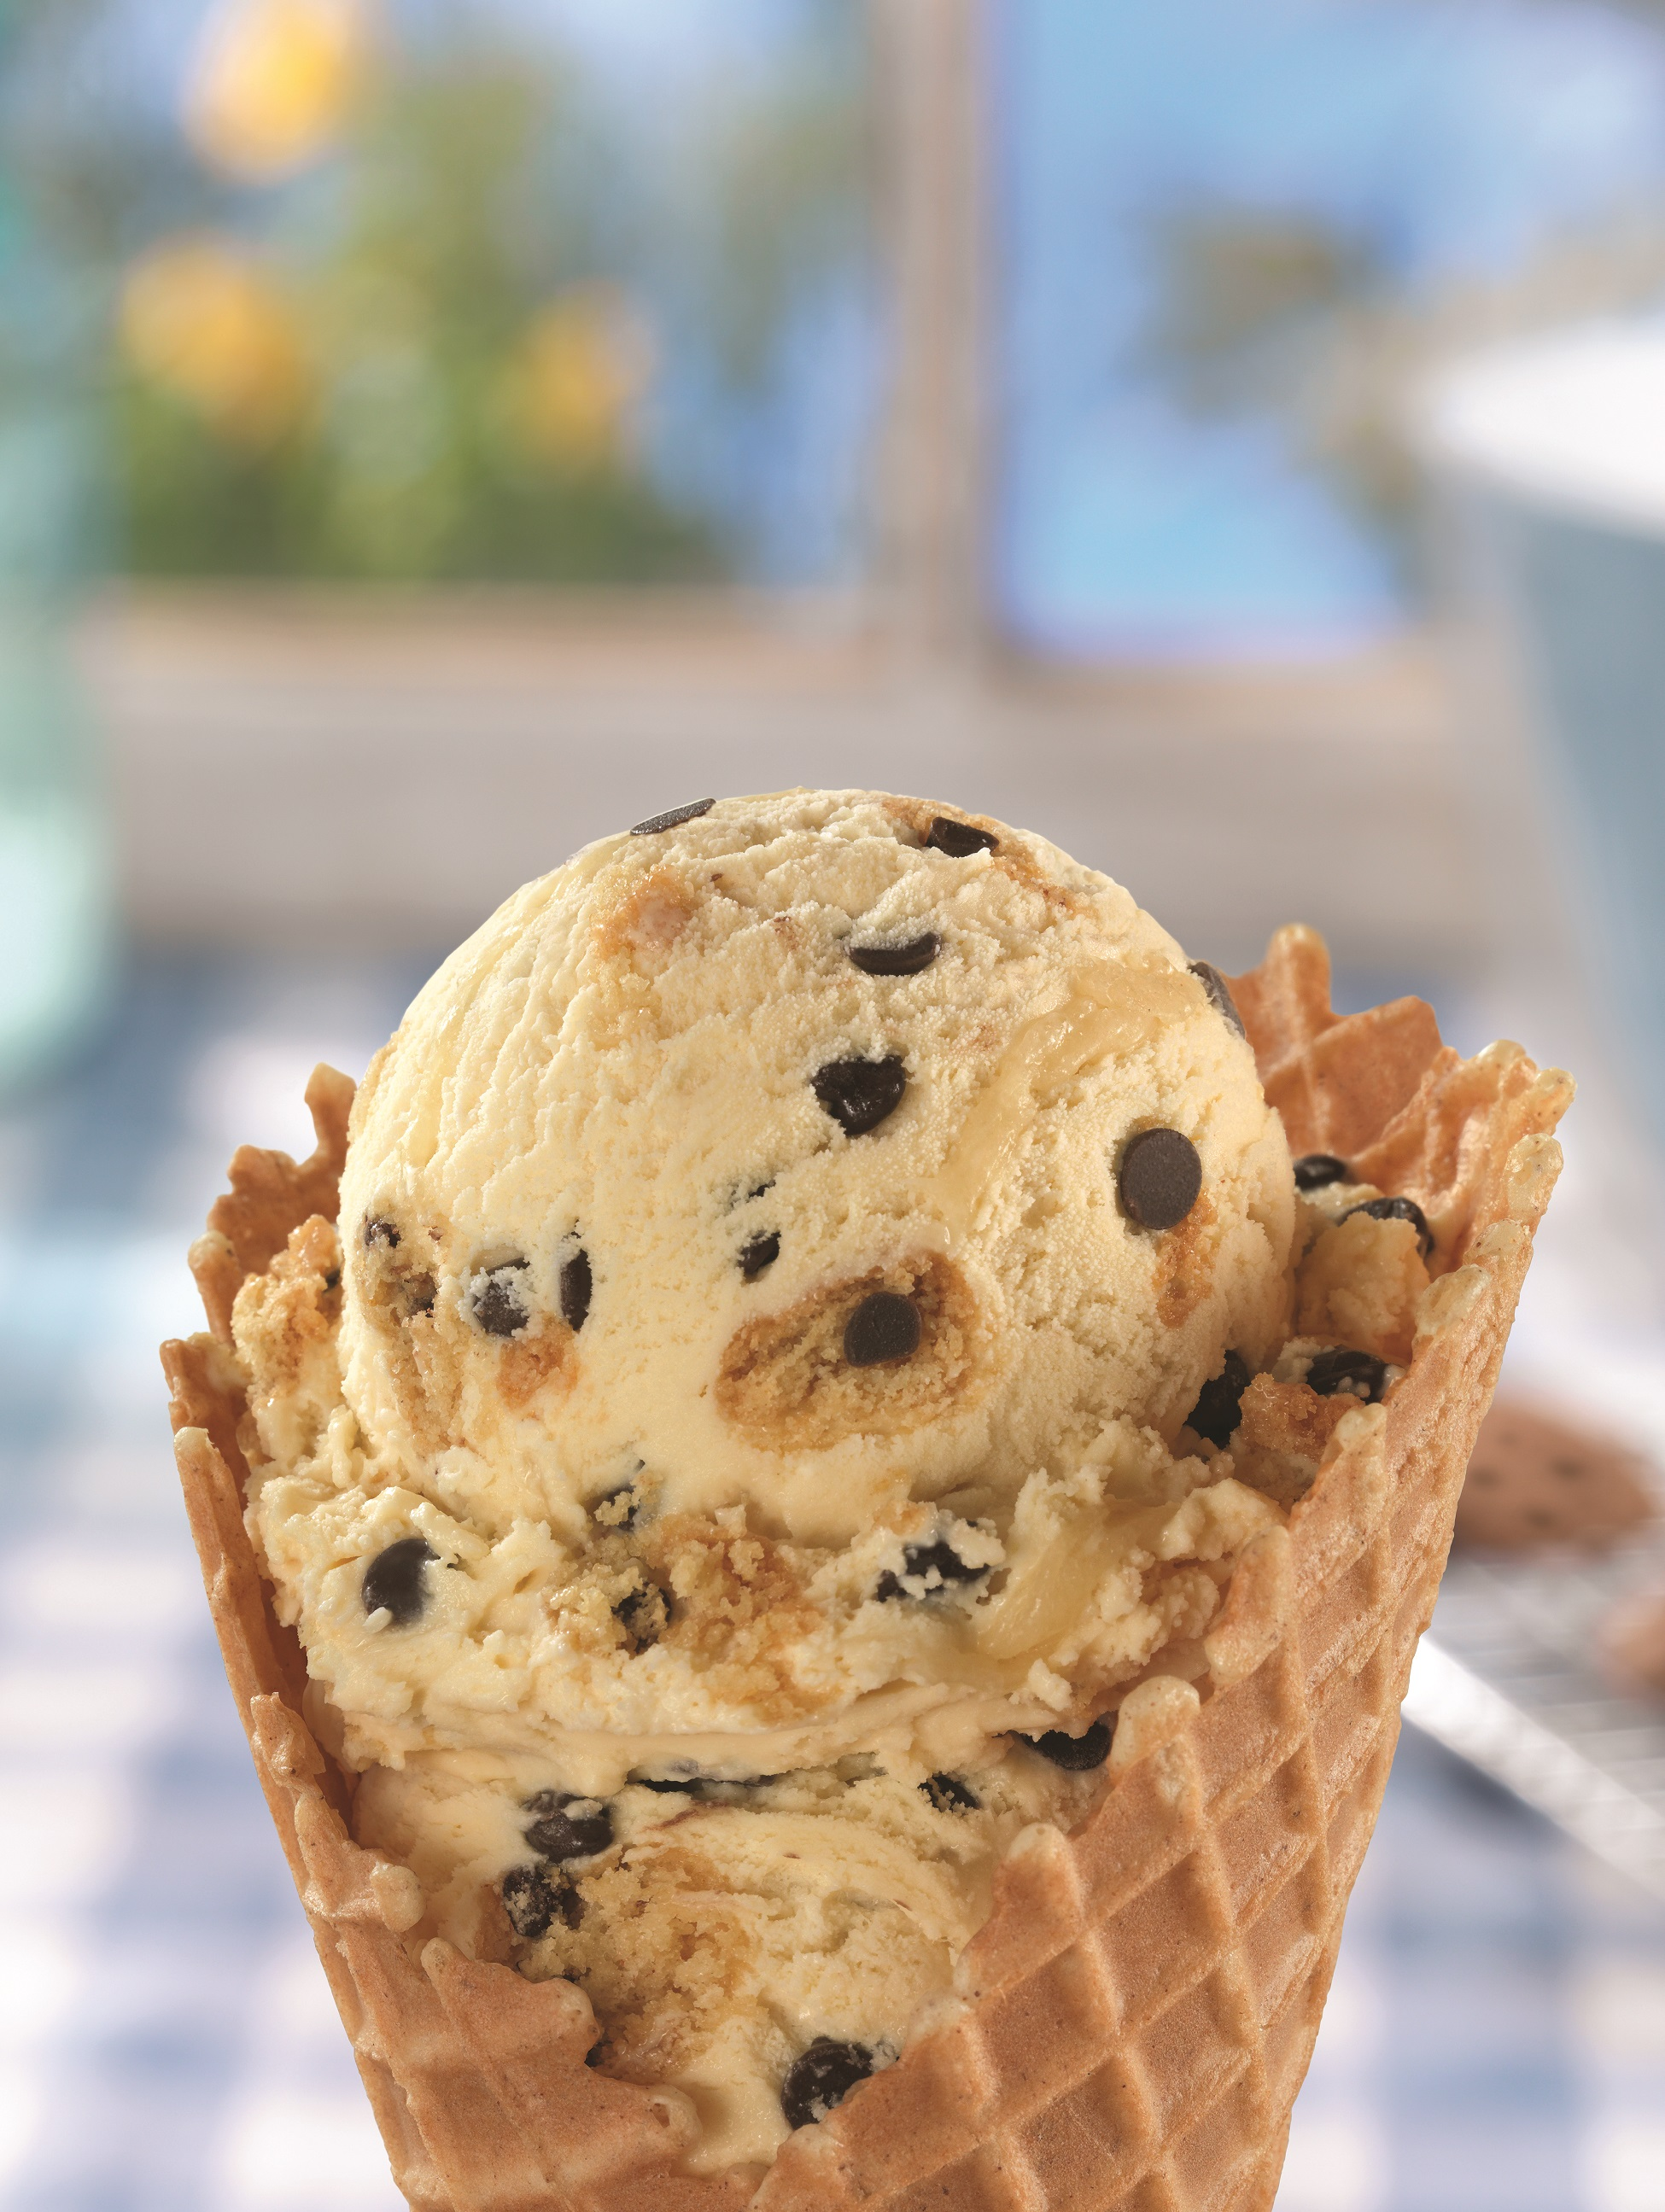 New baskin robbins survey highlights the different ways moms and baskin robbins moms makin cookies ccuart Images